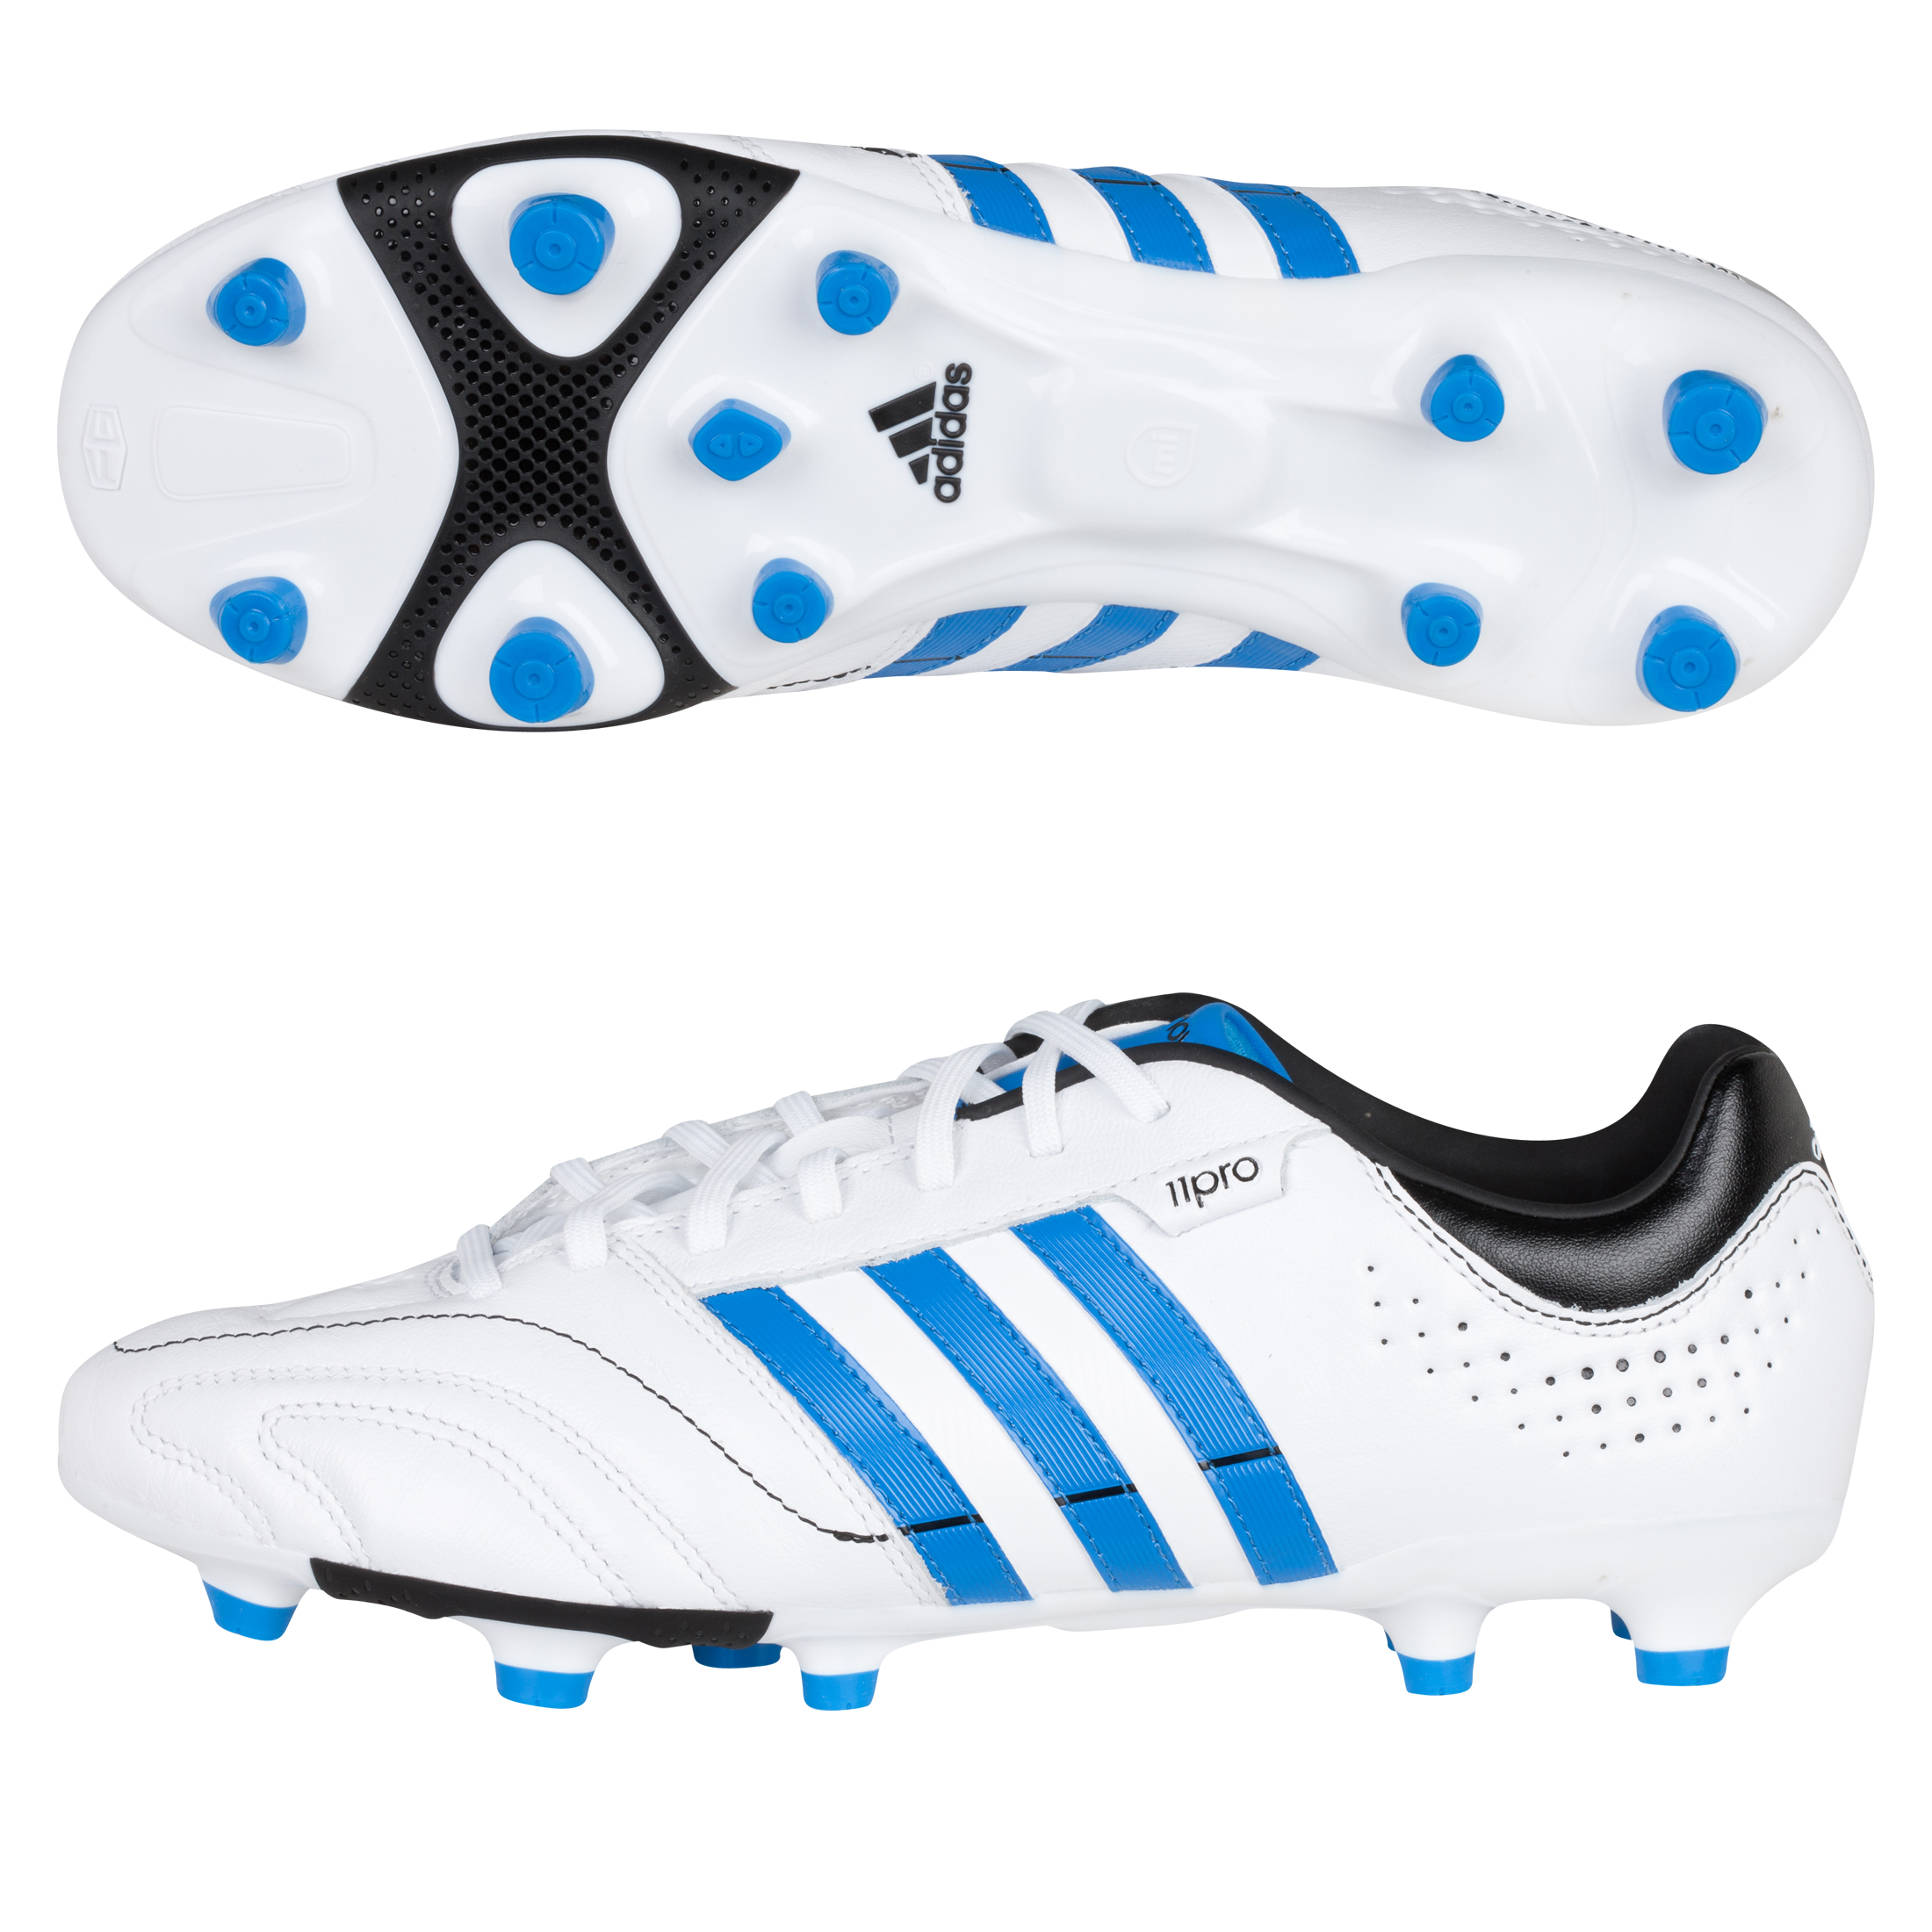 Adidas 11Nova TRX Firm Ground Football Boots - White/Bright Blue/Black